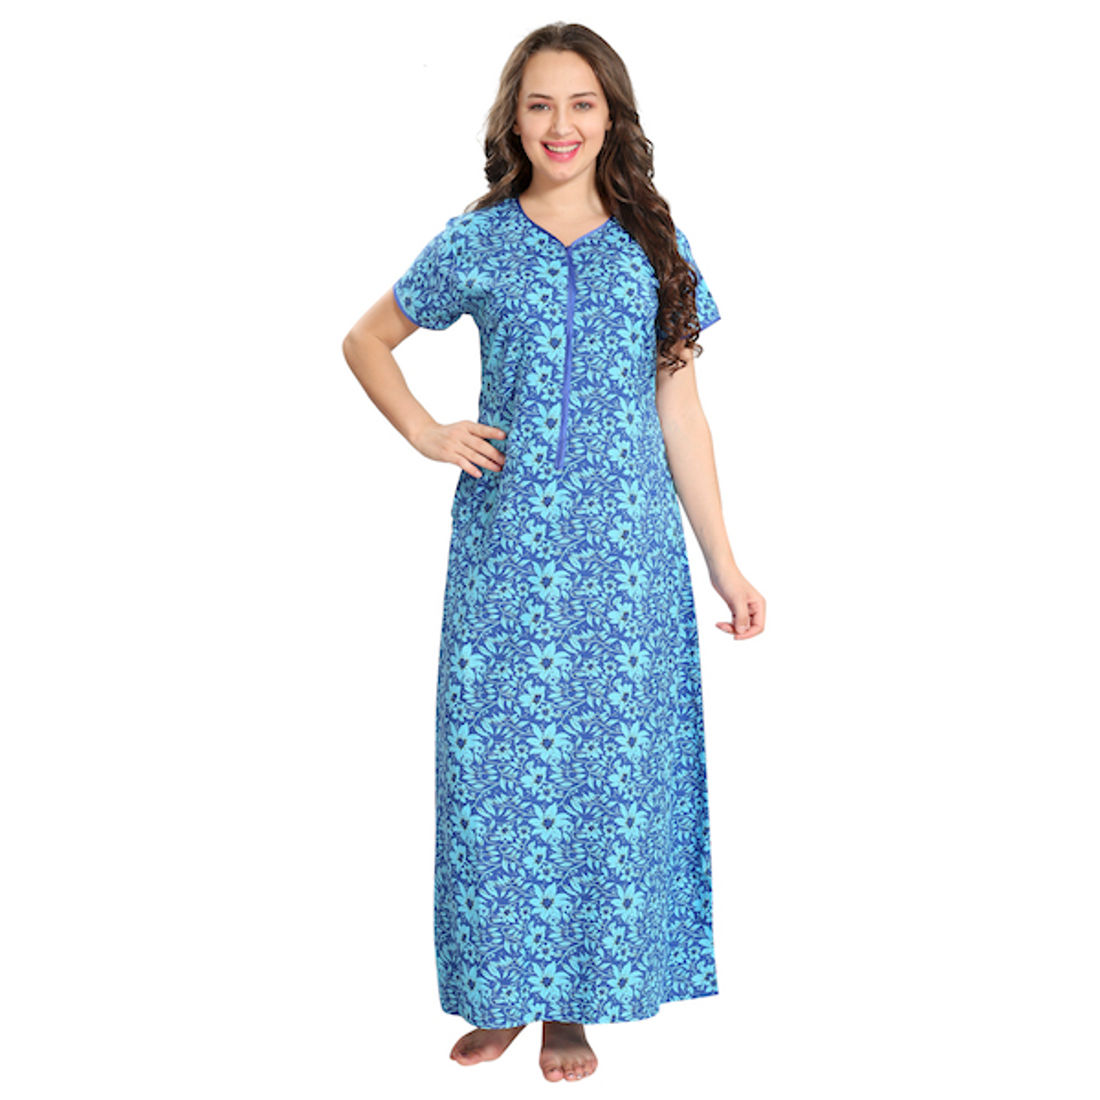 Floral Print Front Zipper Cotton Gown | Hm1050